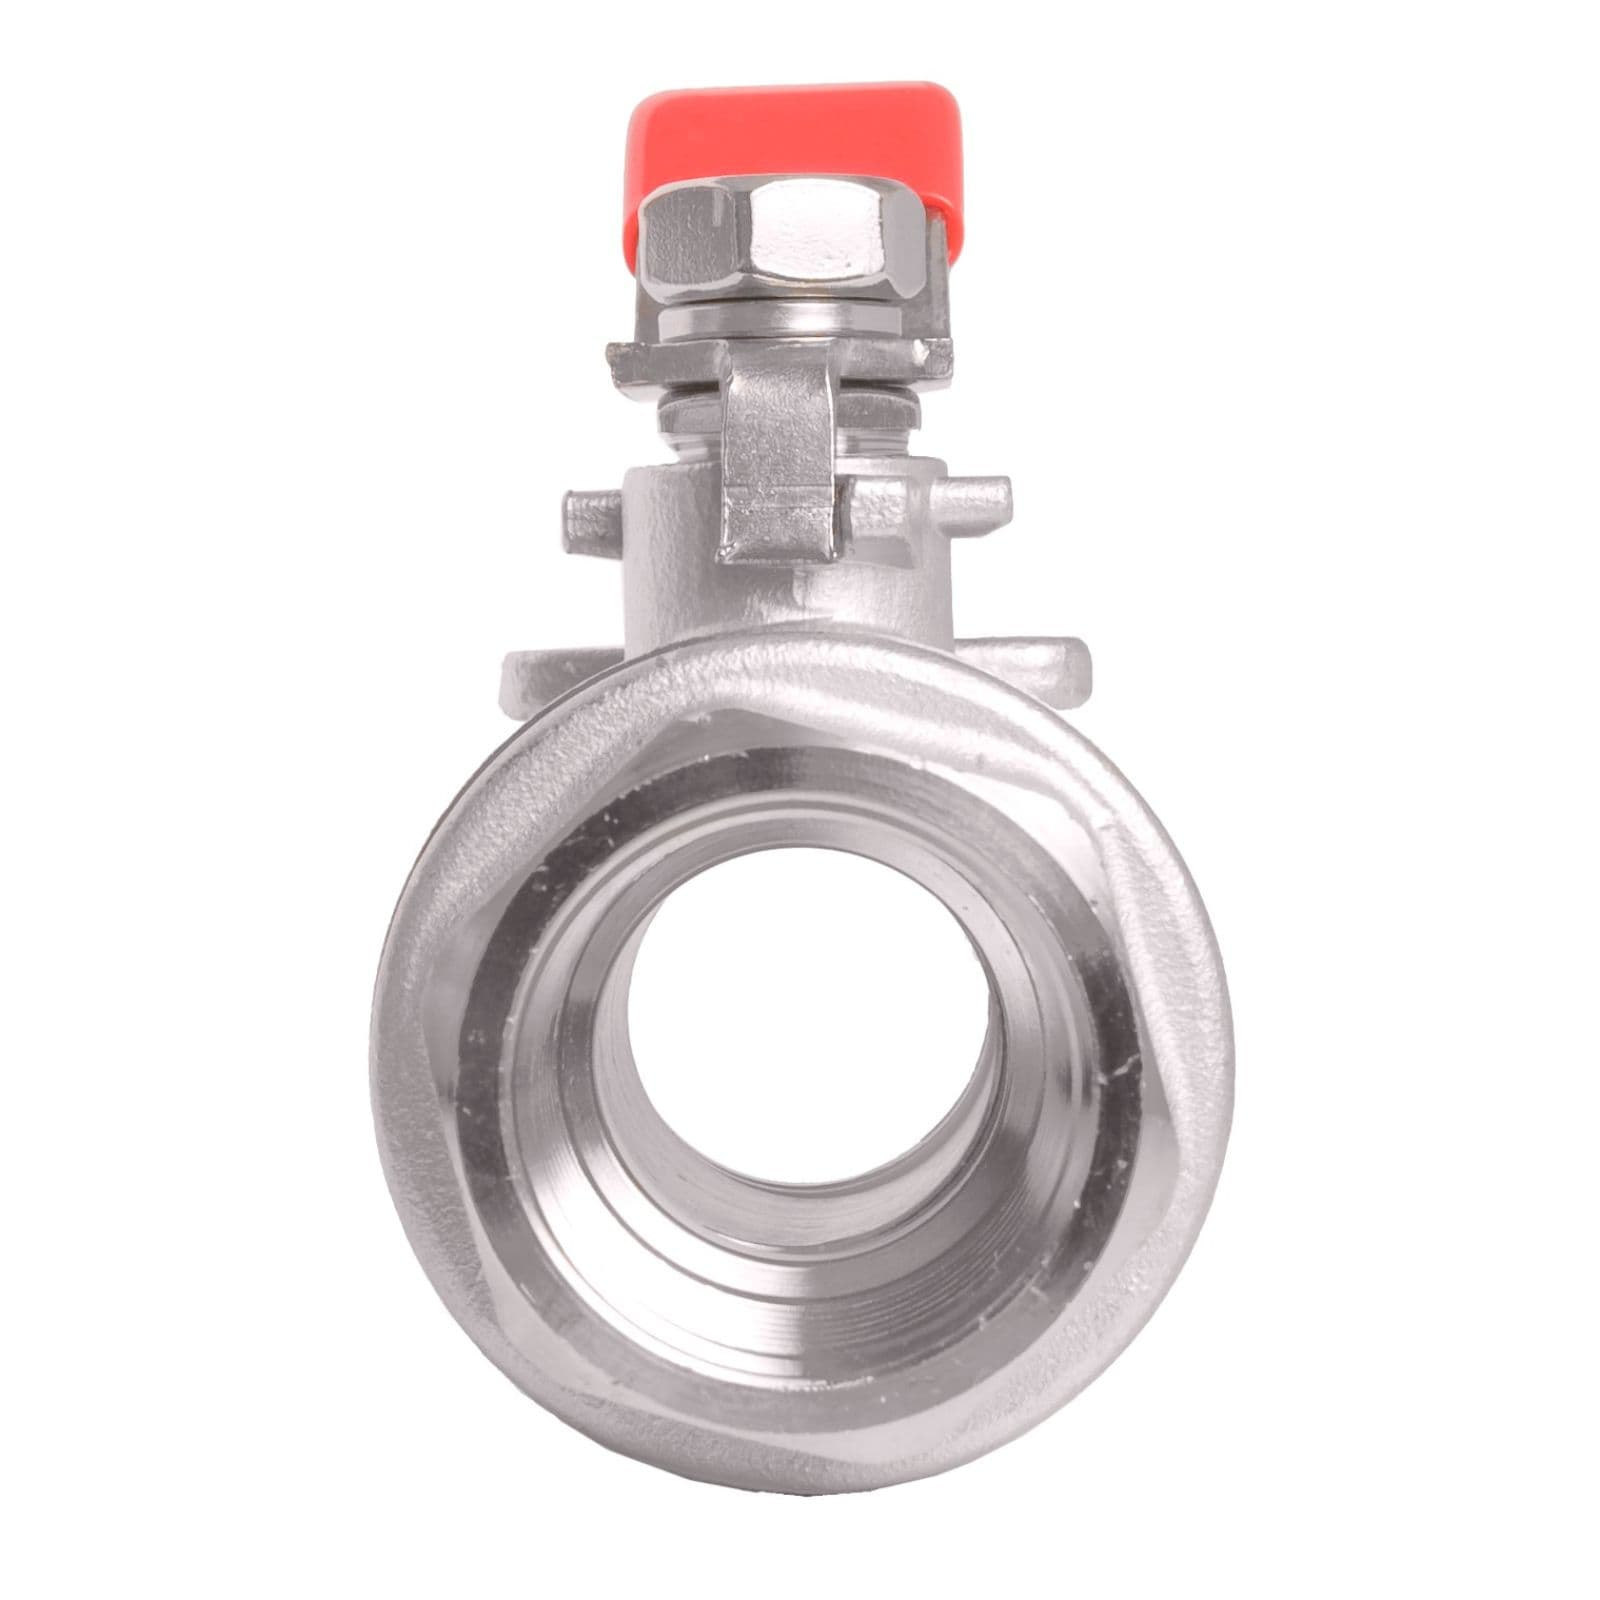 Way Ball Valve Stainless Steel 304 External Thread Type with Vinyl Handle with Card Sleeve Connector